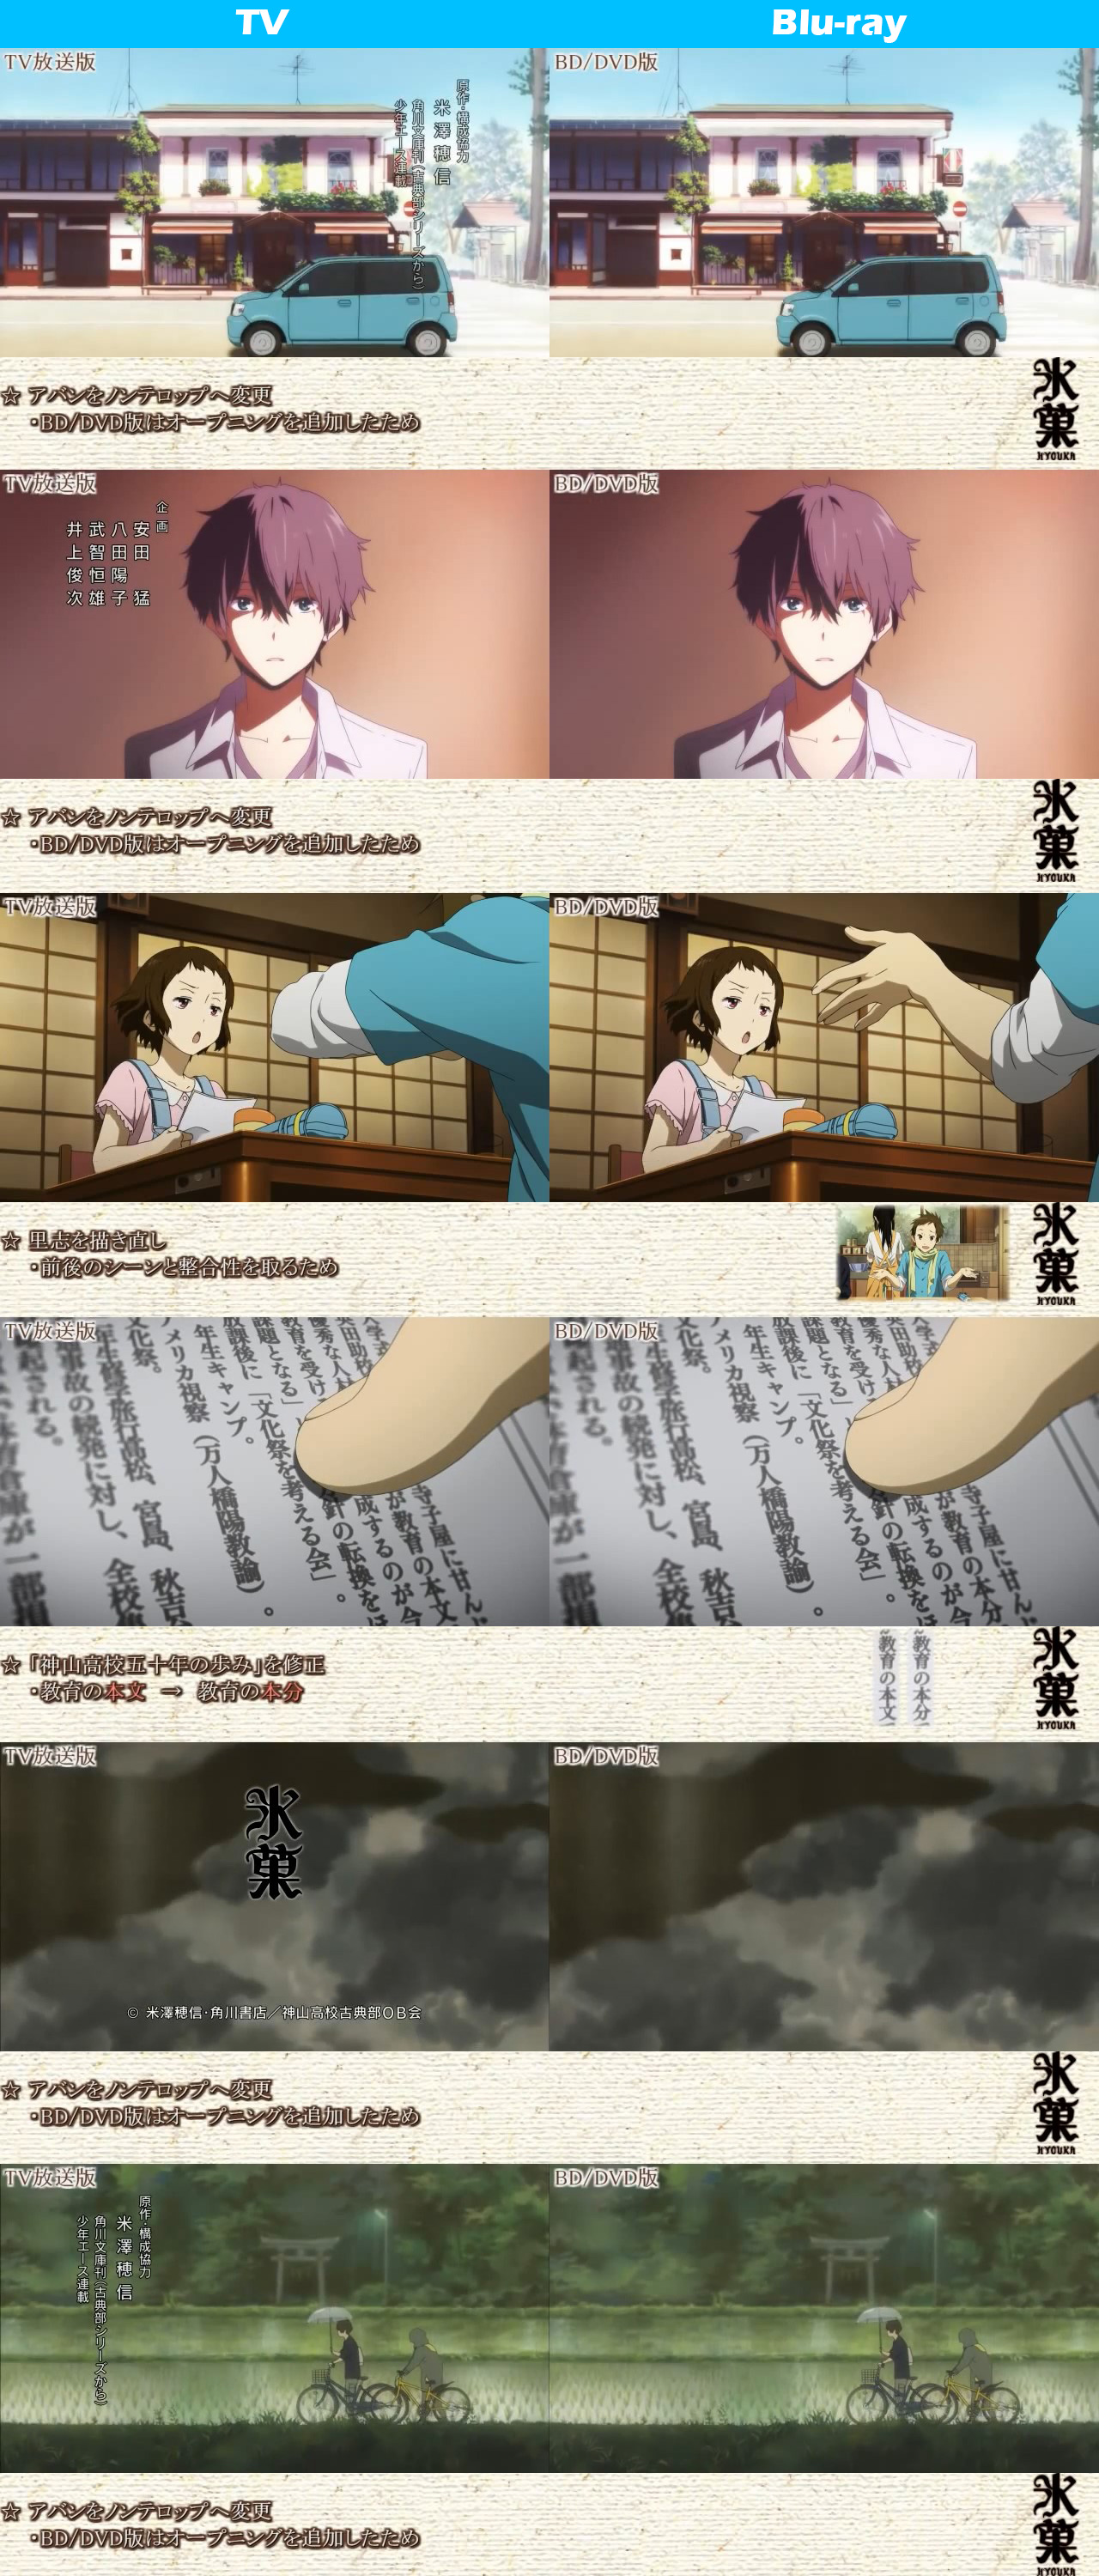 Hyouka-TV-vs-Blu-ray-Comparison-2